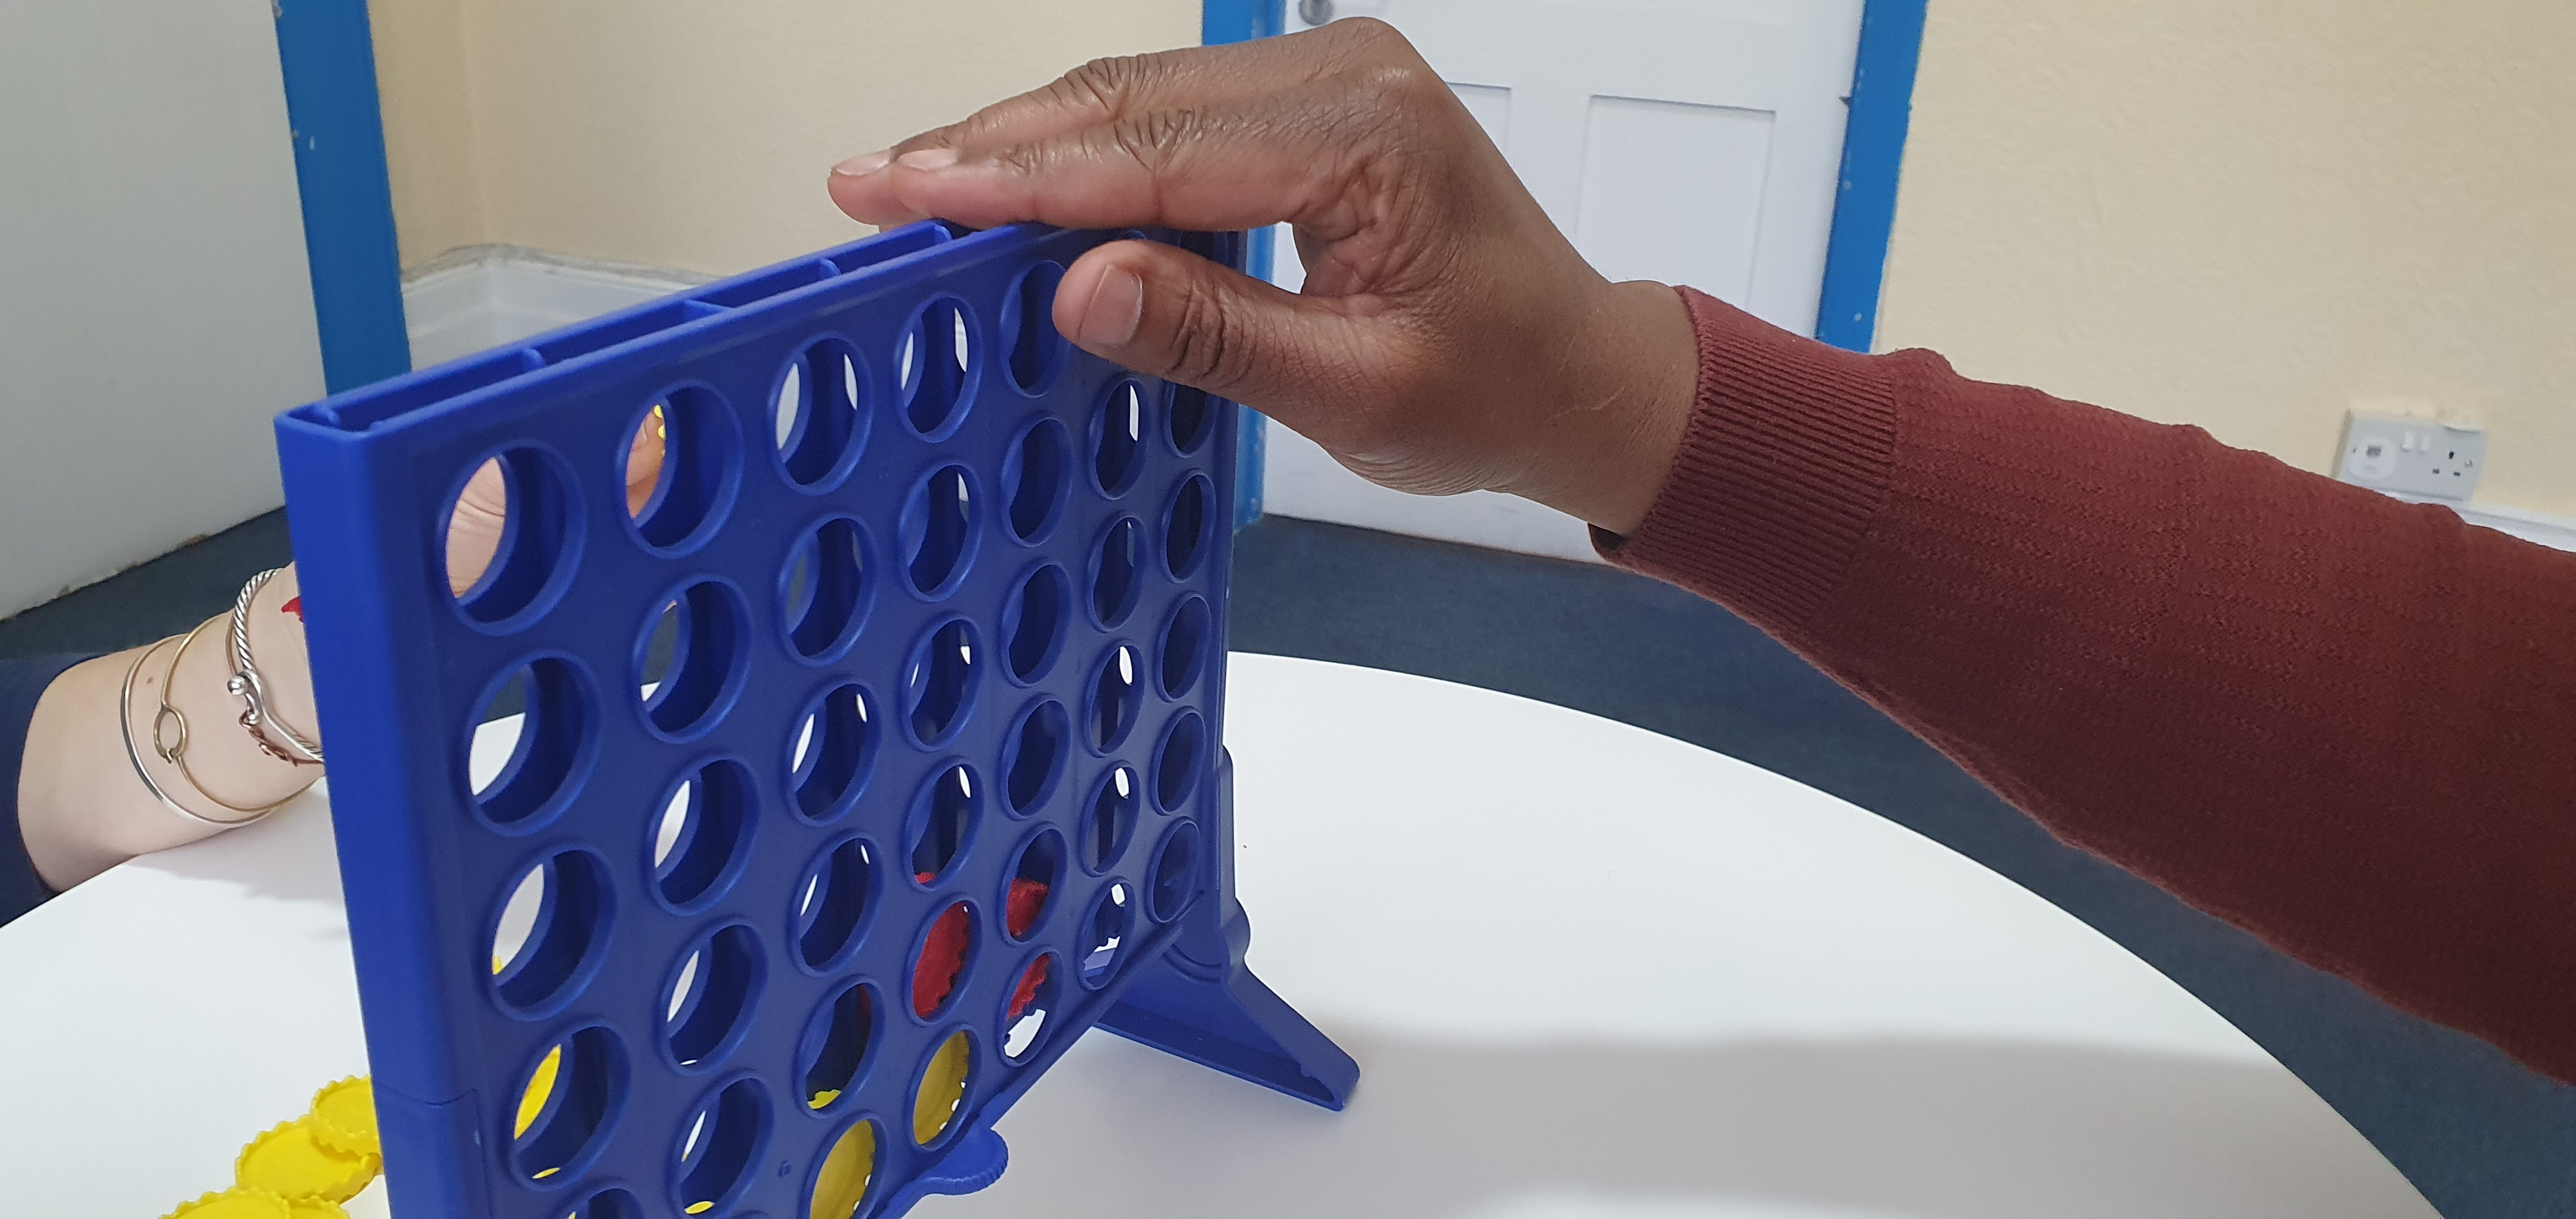 Connect 4 01